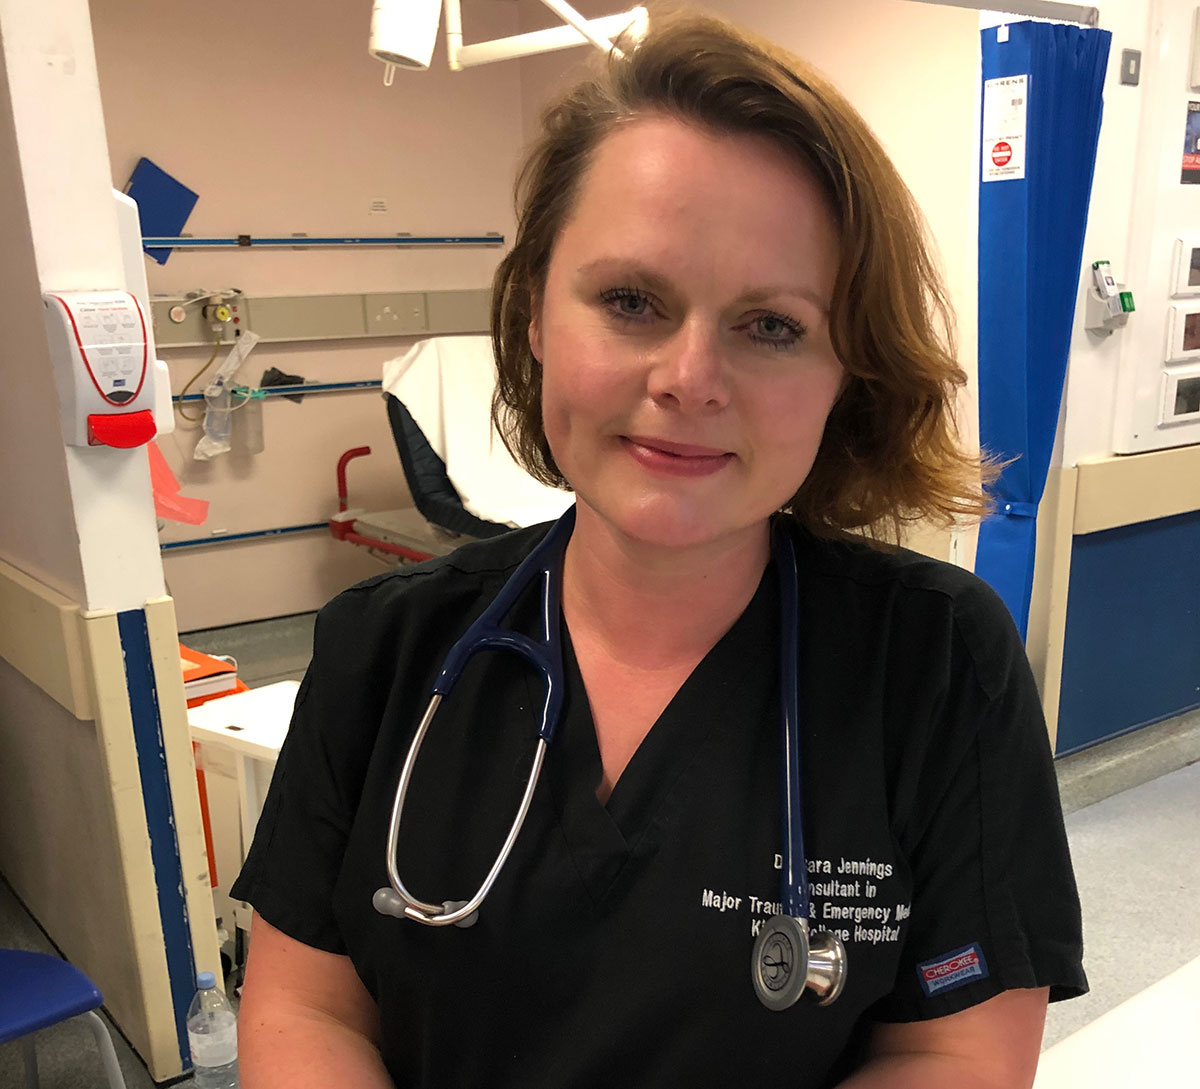 Emergency medicine consultant Cara Jennings, who has also won a free holiday with St Brides Bay Cottages as part of Operation Recuperation.